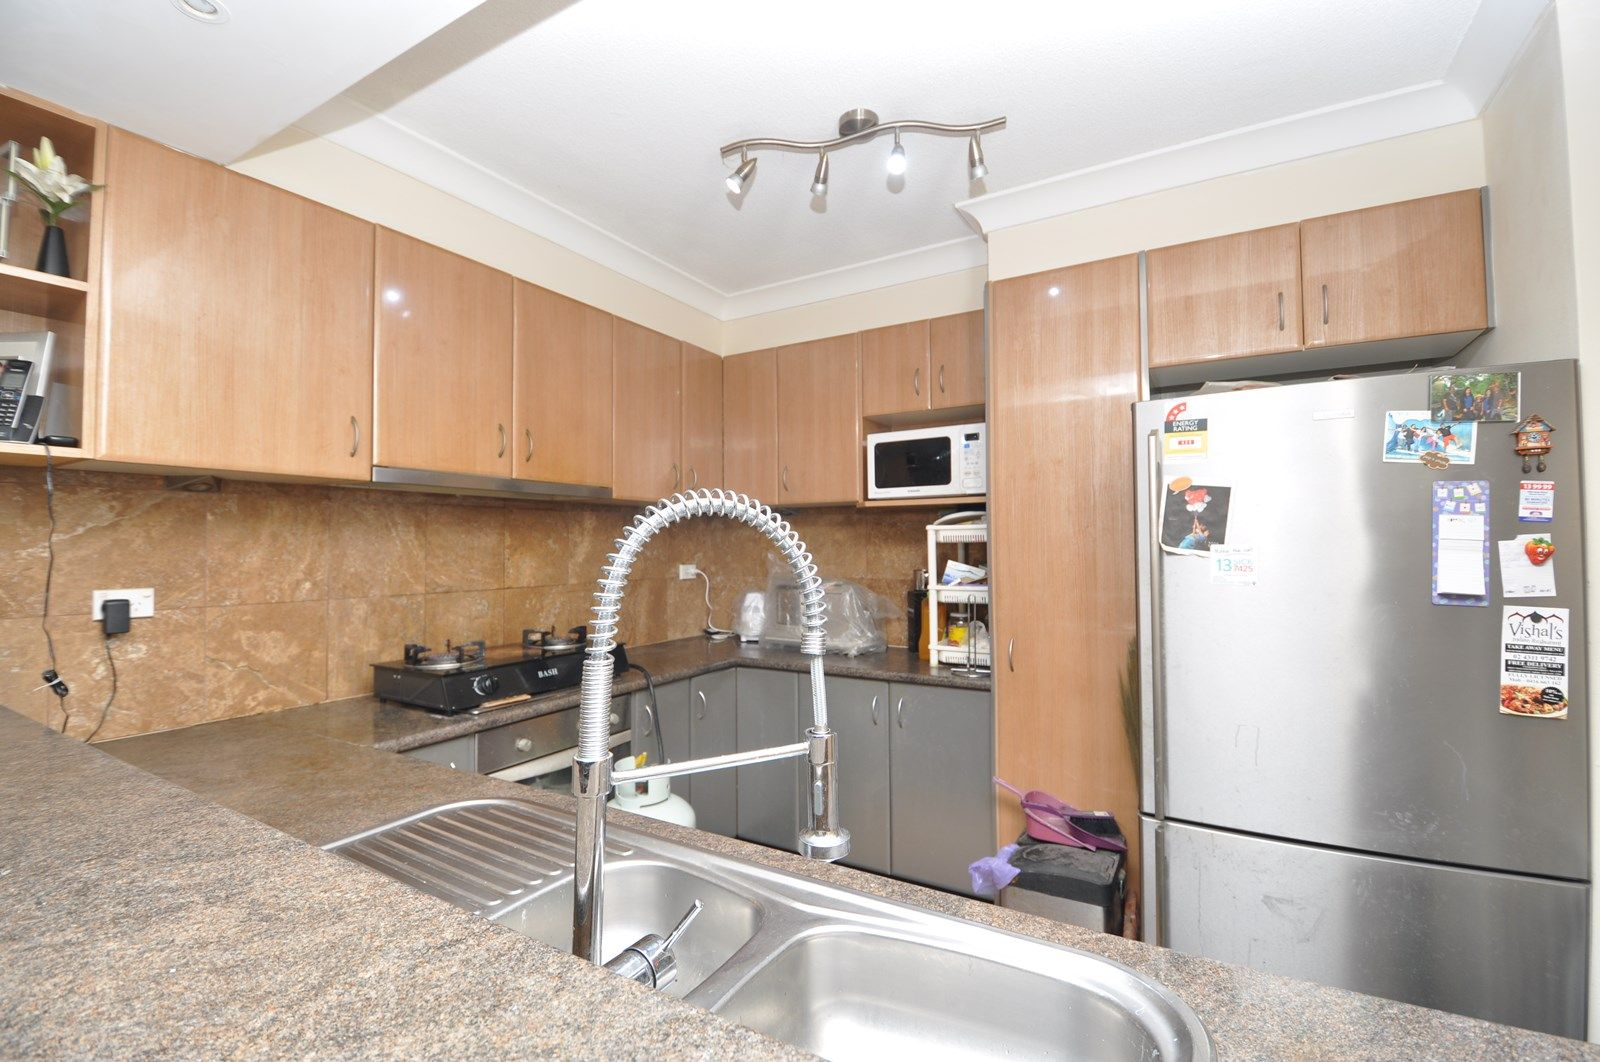 10/202 Henry Parry Drive, North Gosford NSW 2250, Image 2